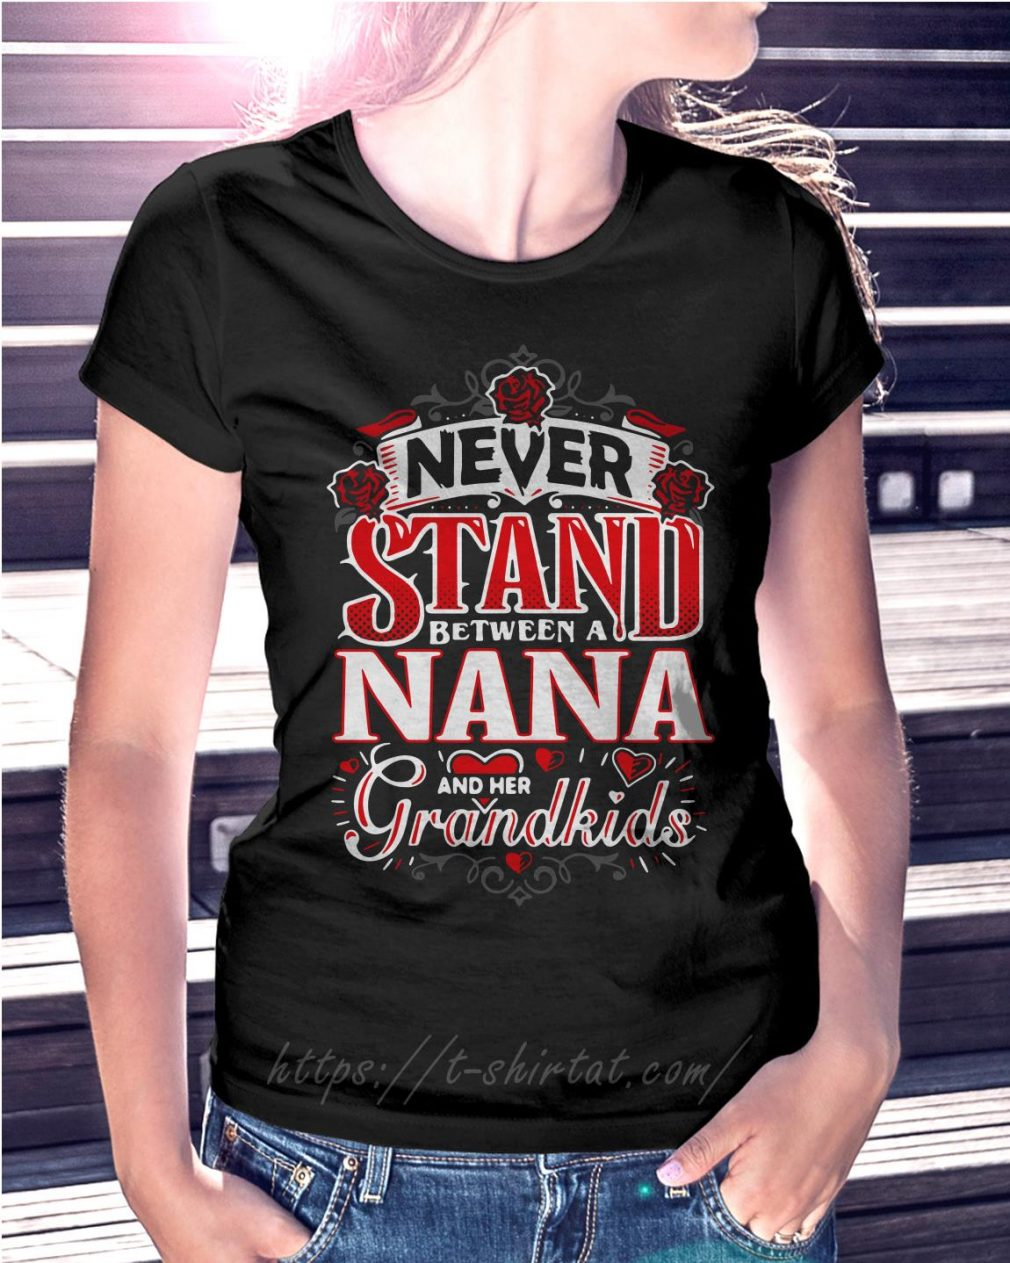 Never stand between a Nana and her grandkids shirtNever stand between a Nana and her grandkids